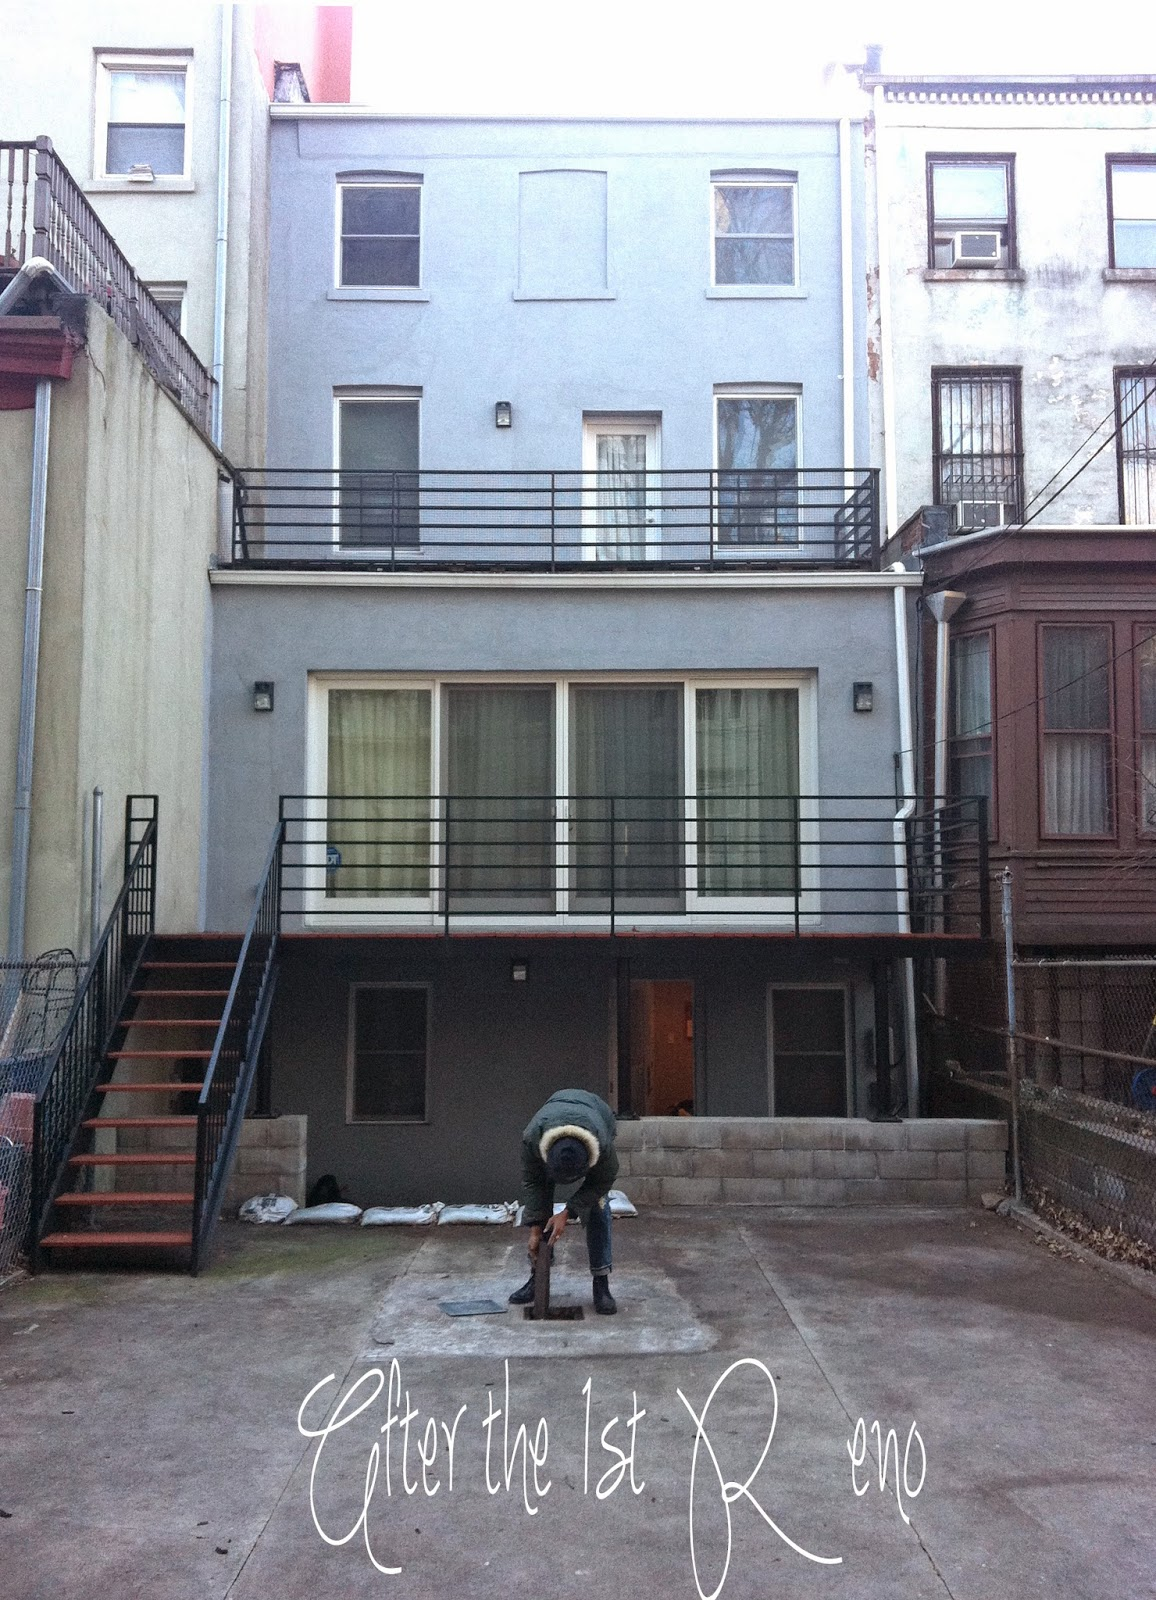 Architect, Robert A. King, did major renovations to the brownstone including adding a deck to the back, sliding doors and a stair case to access the back from the parlor floor.